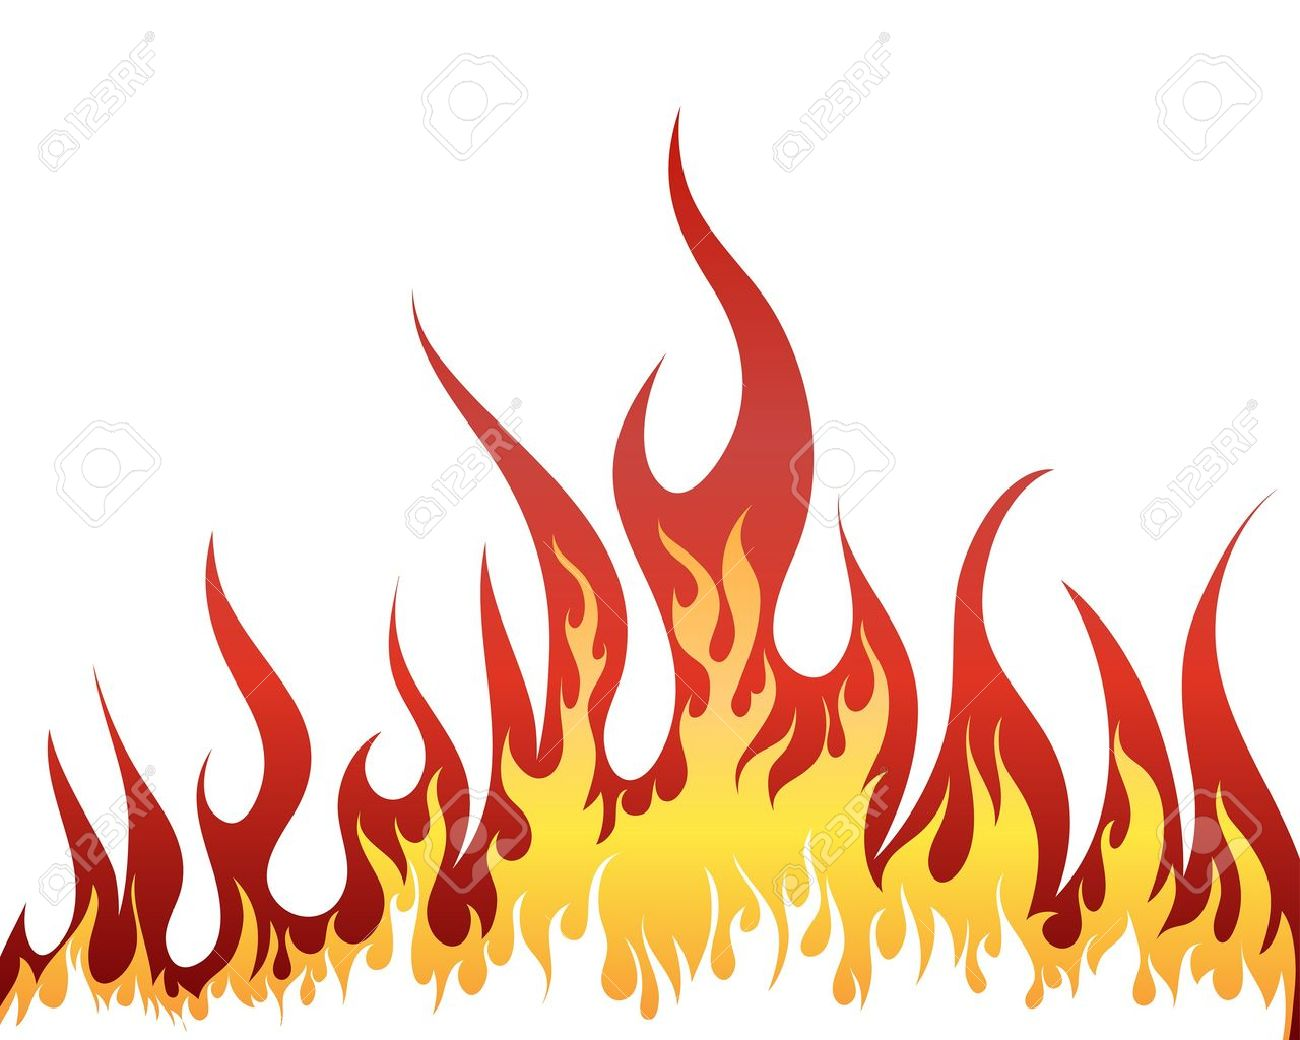 Inferno fire background for design use - 7164892